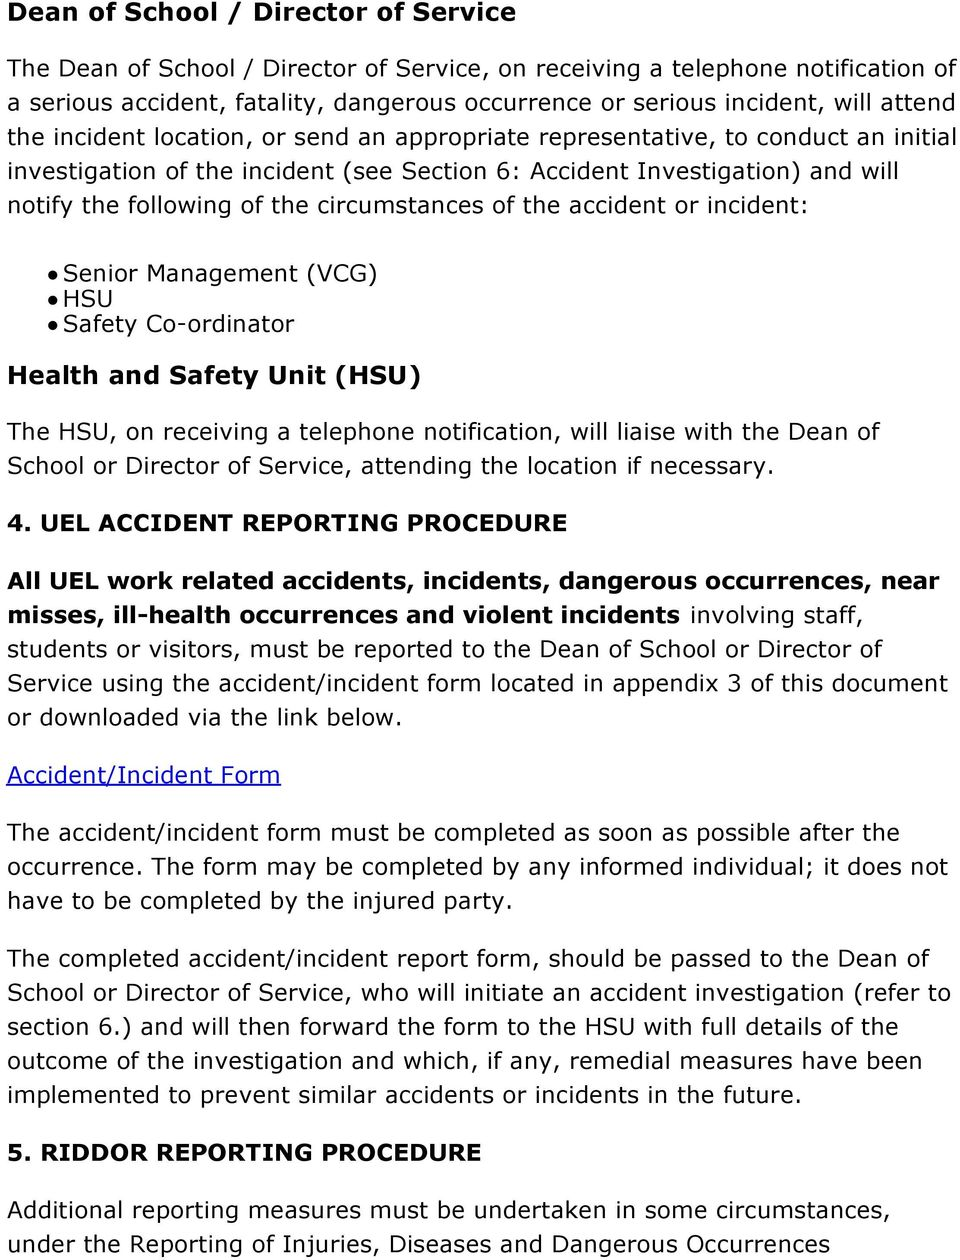 circumstances of the accident or incident: Senior Management (VCG) HSU Safety Co-ordinator Health and Safety Unit (HSU) The HSU, on receiving a telephone notification, will liaise with the Dean of